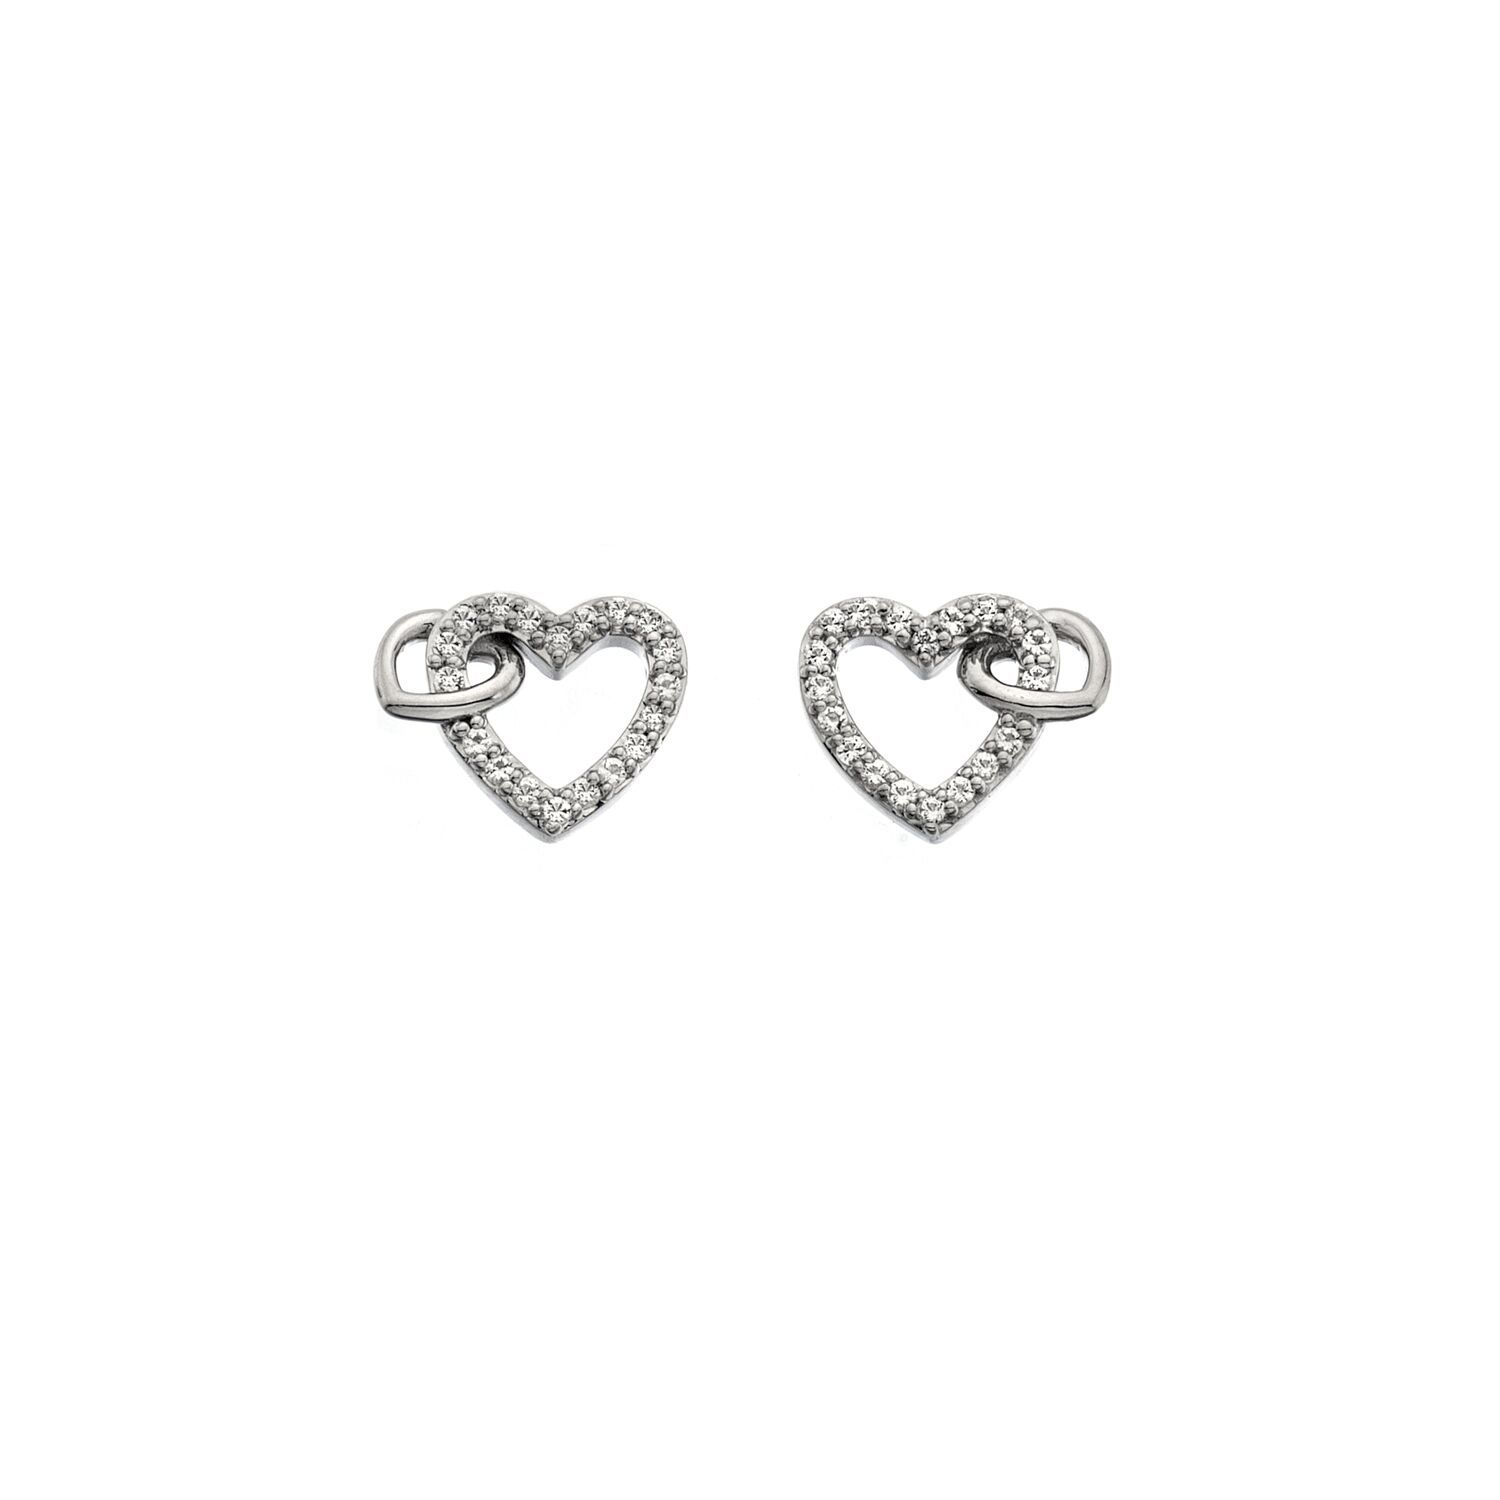 Silver White topaz stone-set open heart earrings from Hot Diamonds